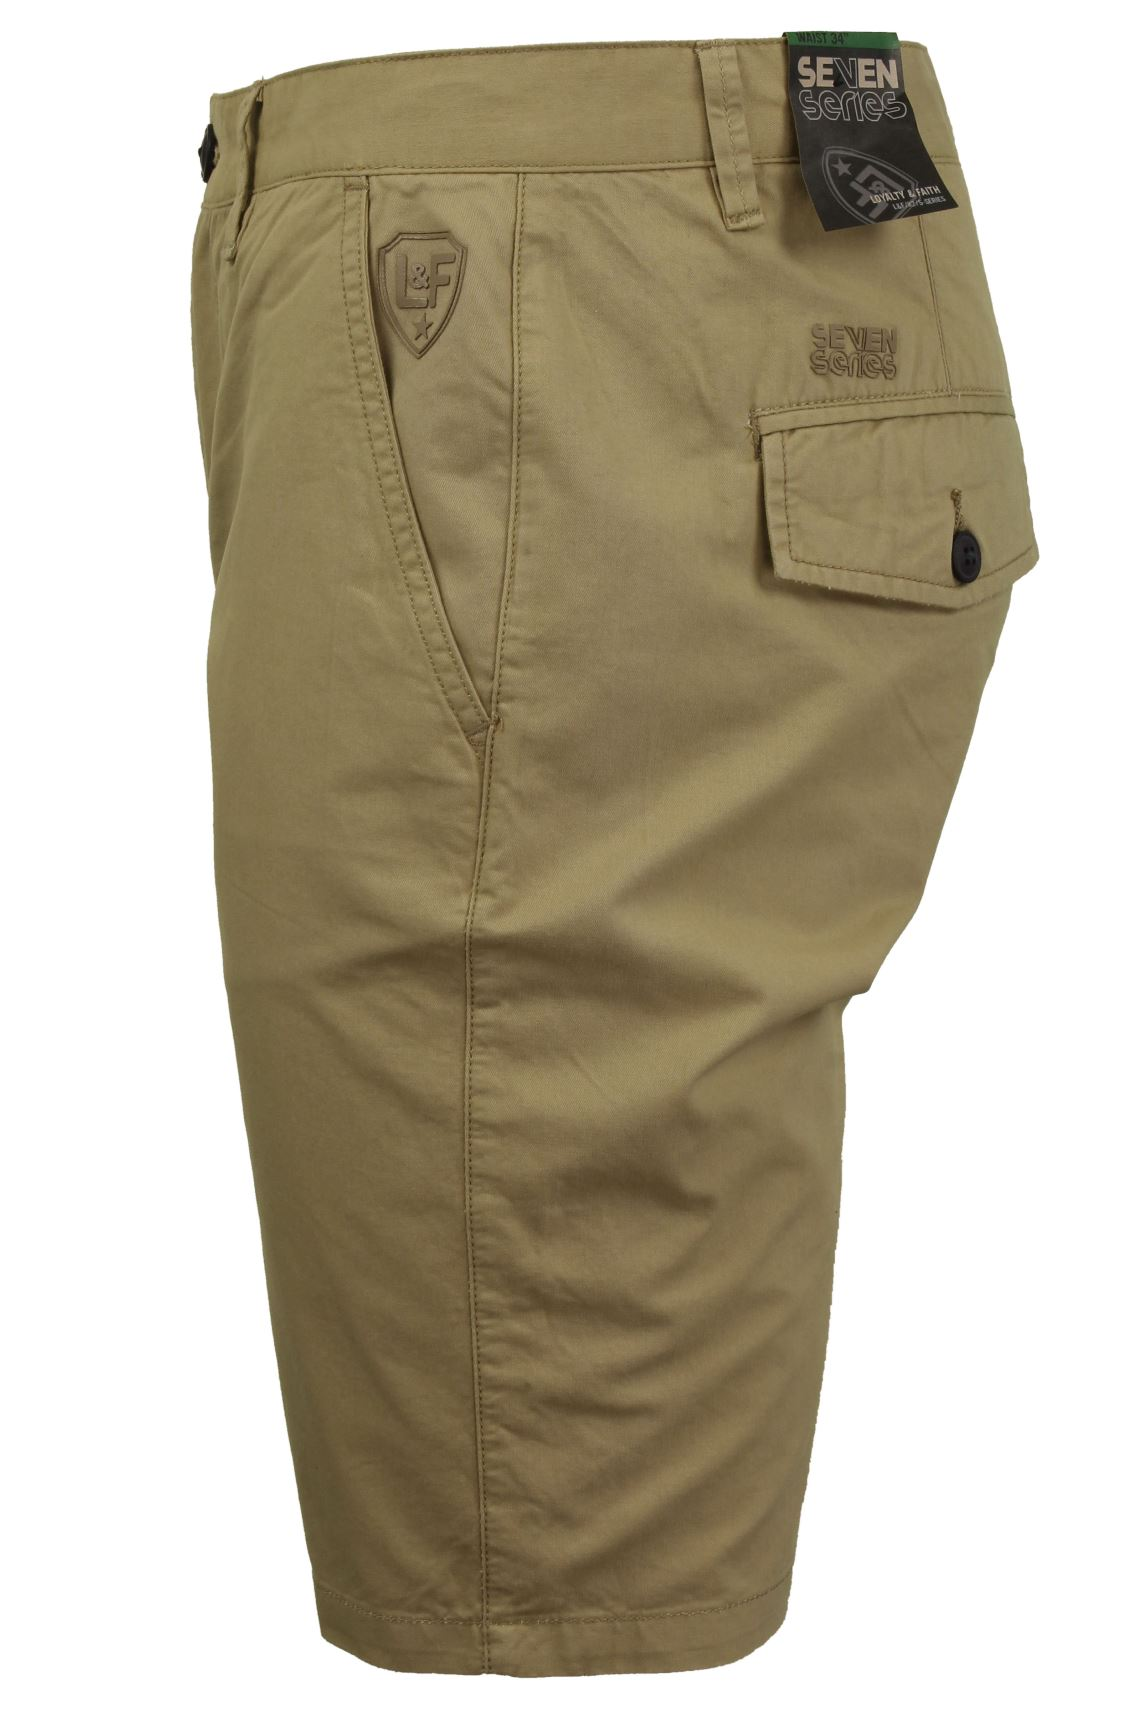 Mens Summer Chino Shorts in 100% Cotton Twill